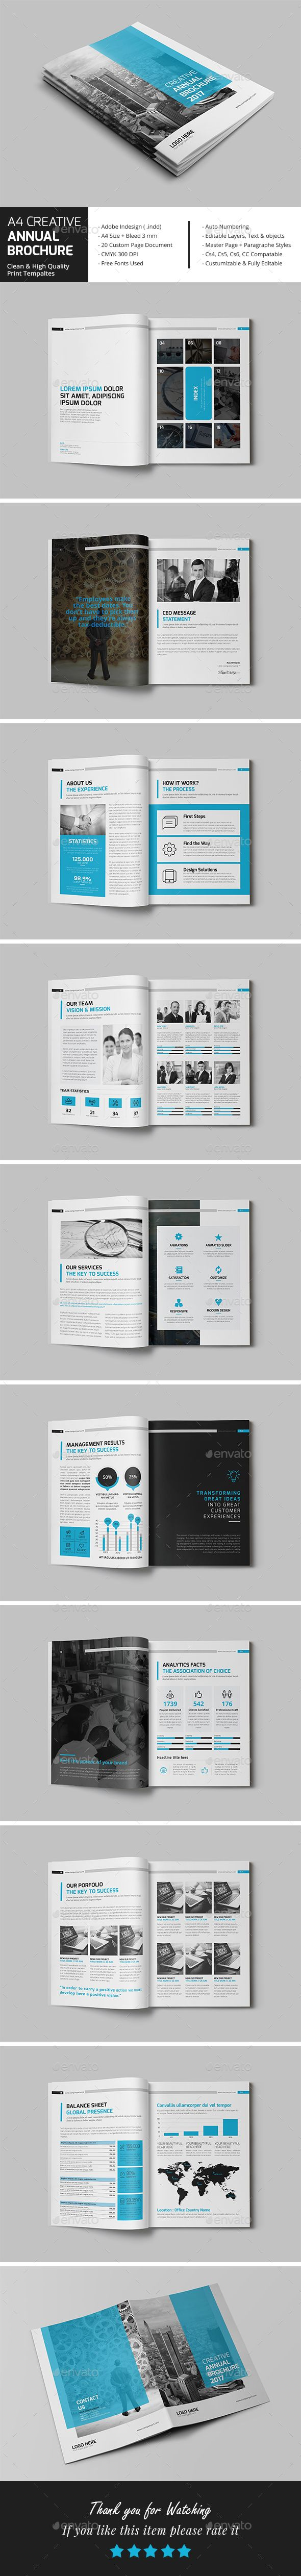 A4 Creative Annual Brochure Template InDesign INDD | Brochure ...